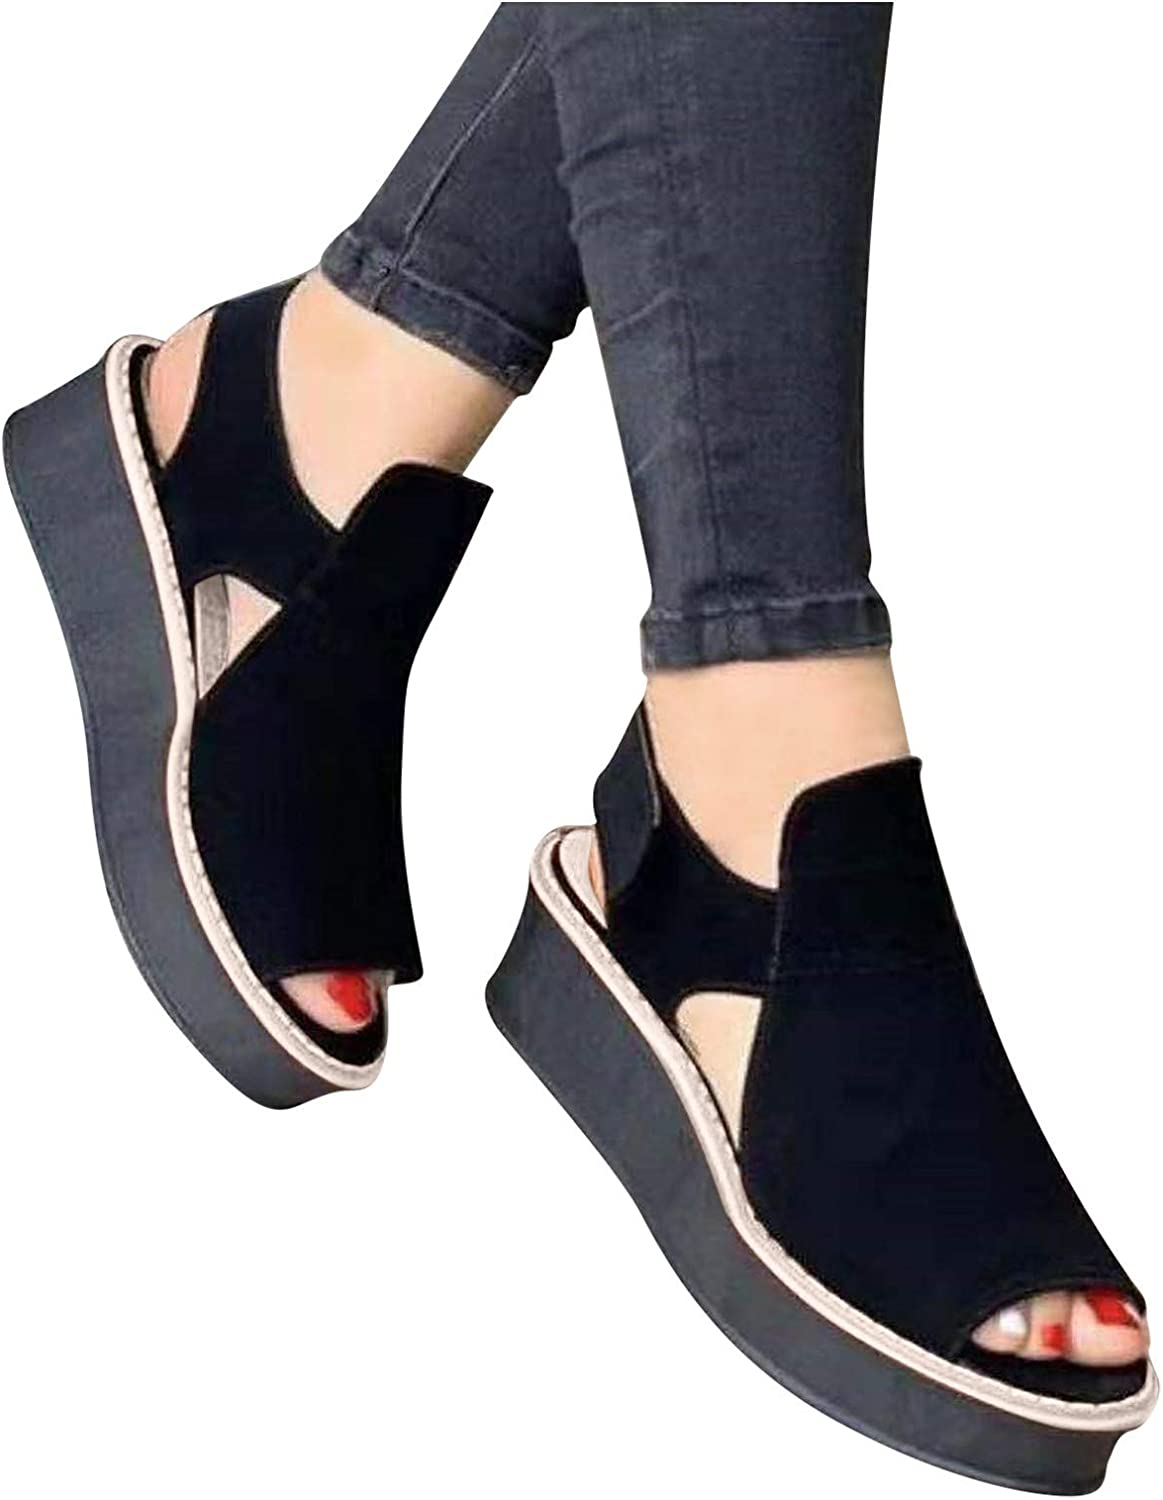 Hgndbloo Outdoor Sandals for Shoes Women Platform Max 71% Price reduction OFF Wedge